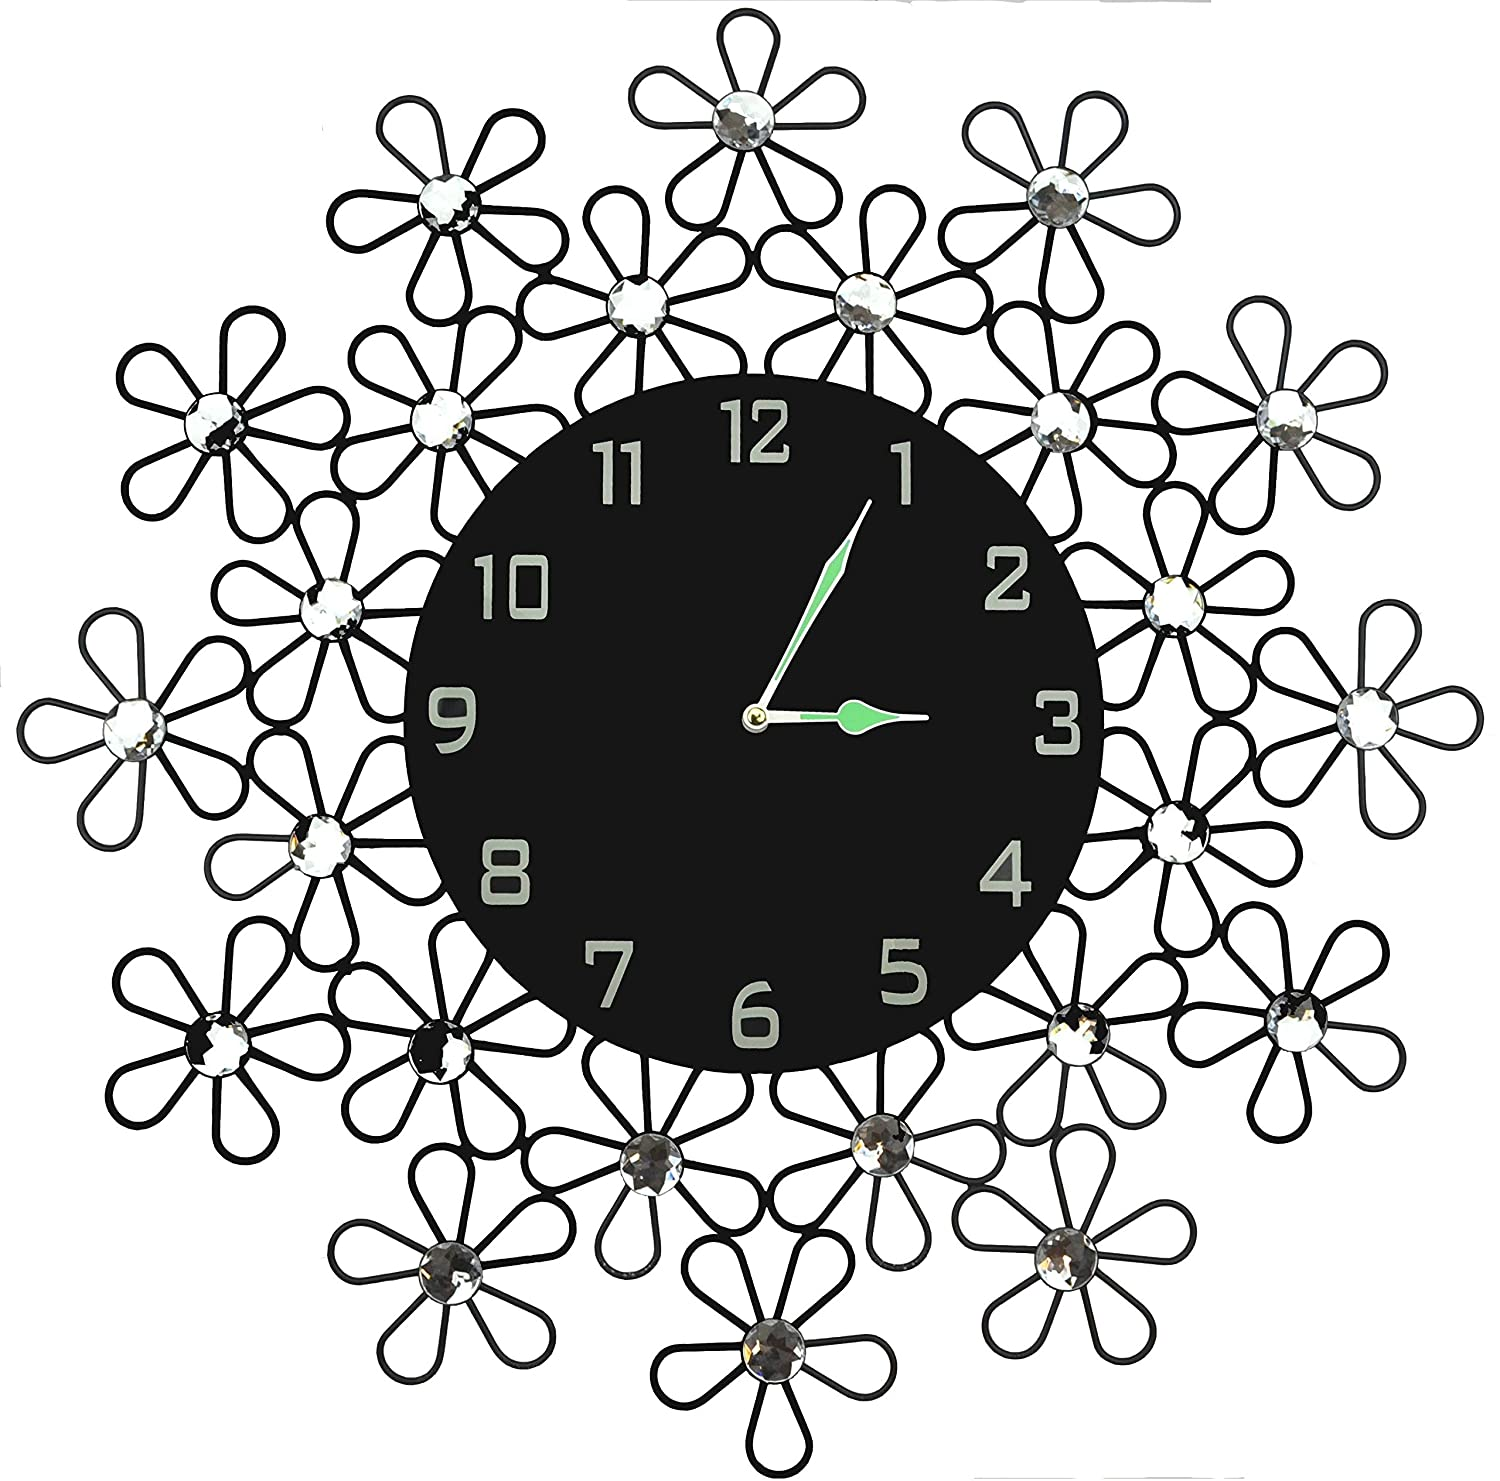 Amazon lulu decor daisy wall clock decorative metal wall amazon lulu decor daisy wall clock decorative metal wall clock black glass dial in arabic numerals clock diameter 2350 modern wall clock amipublicfo Image collections